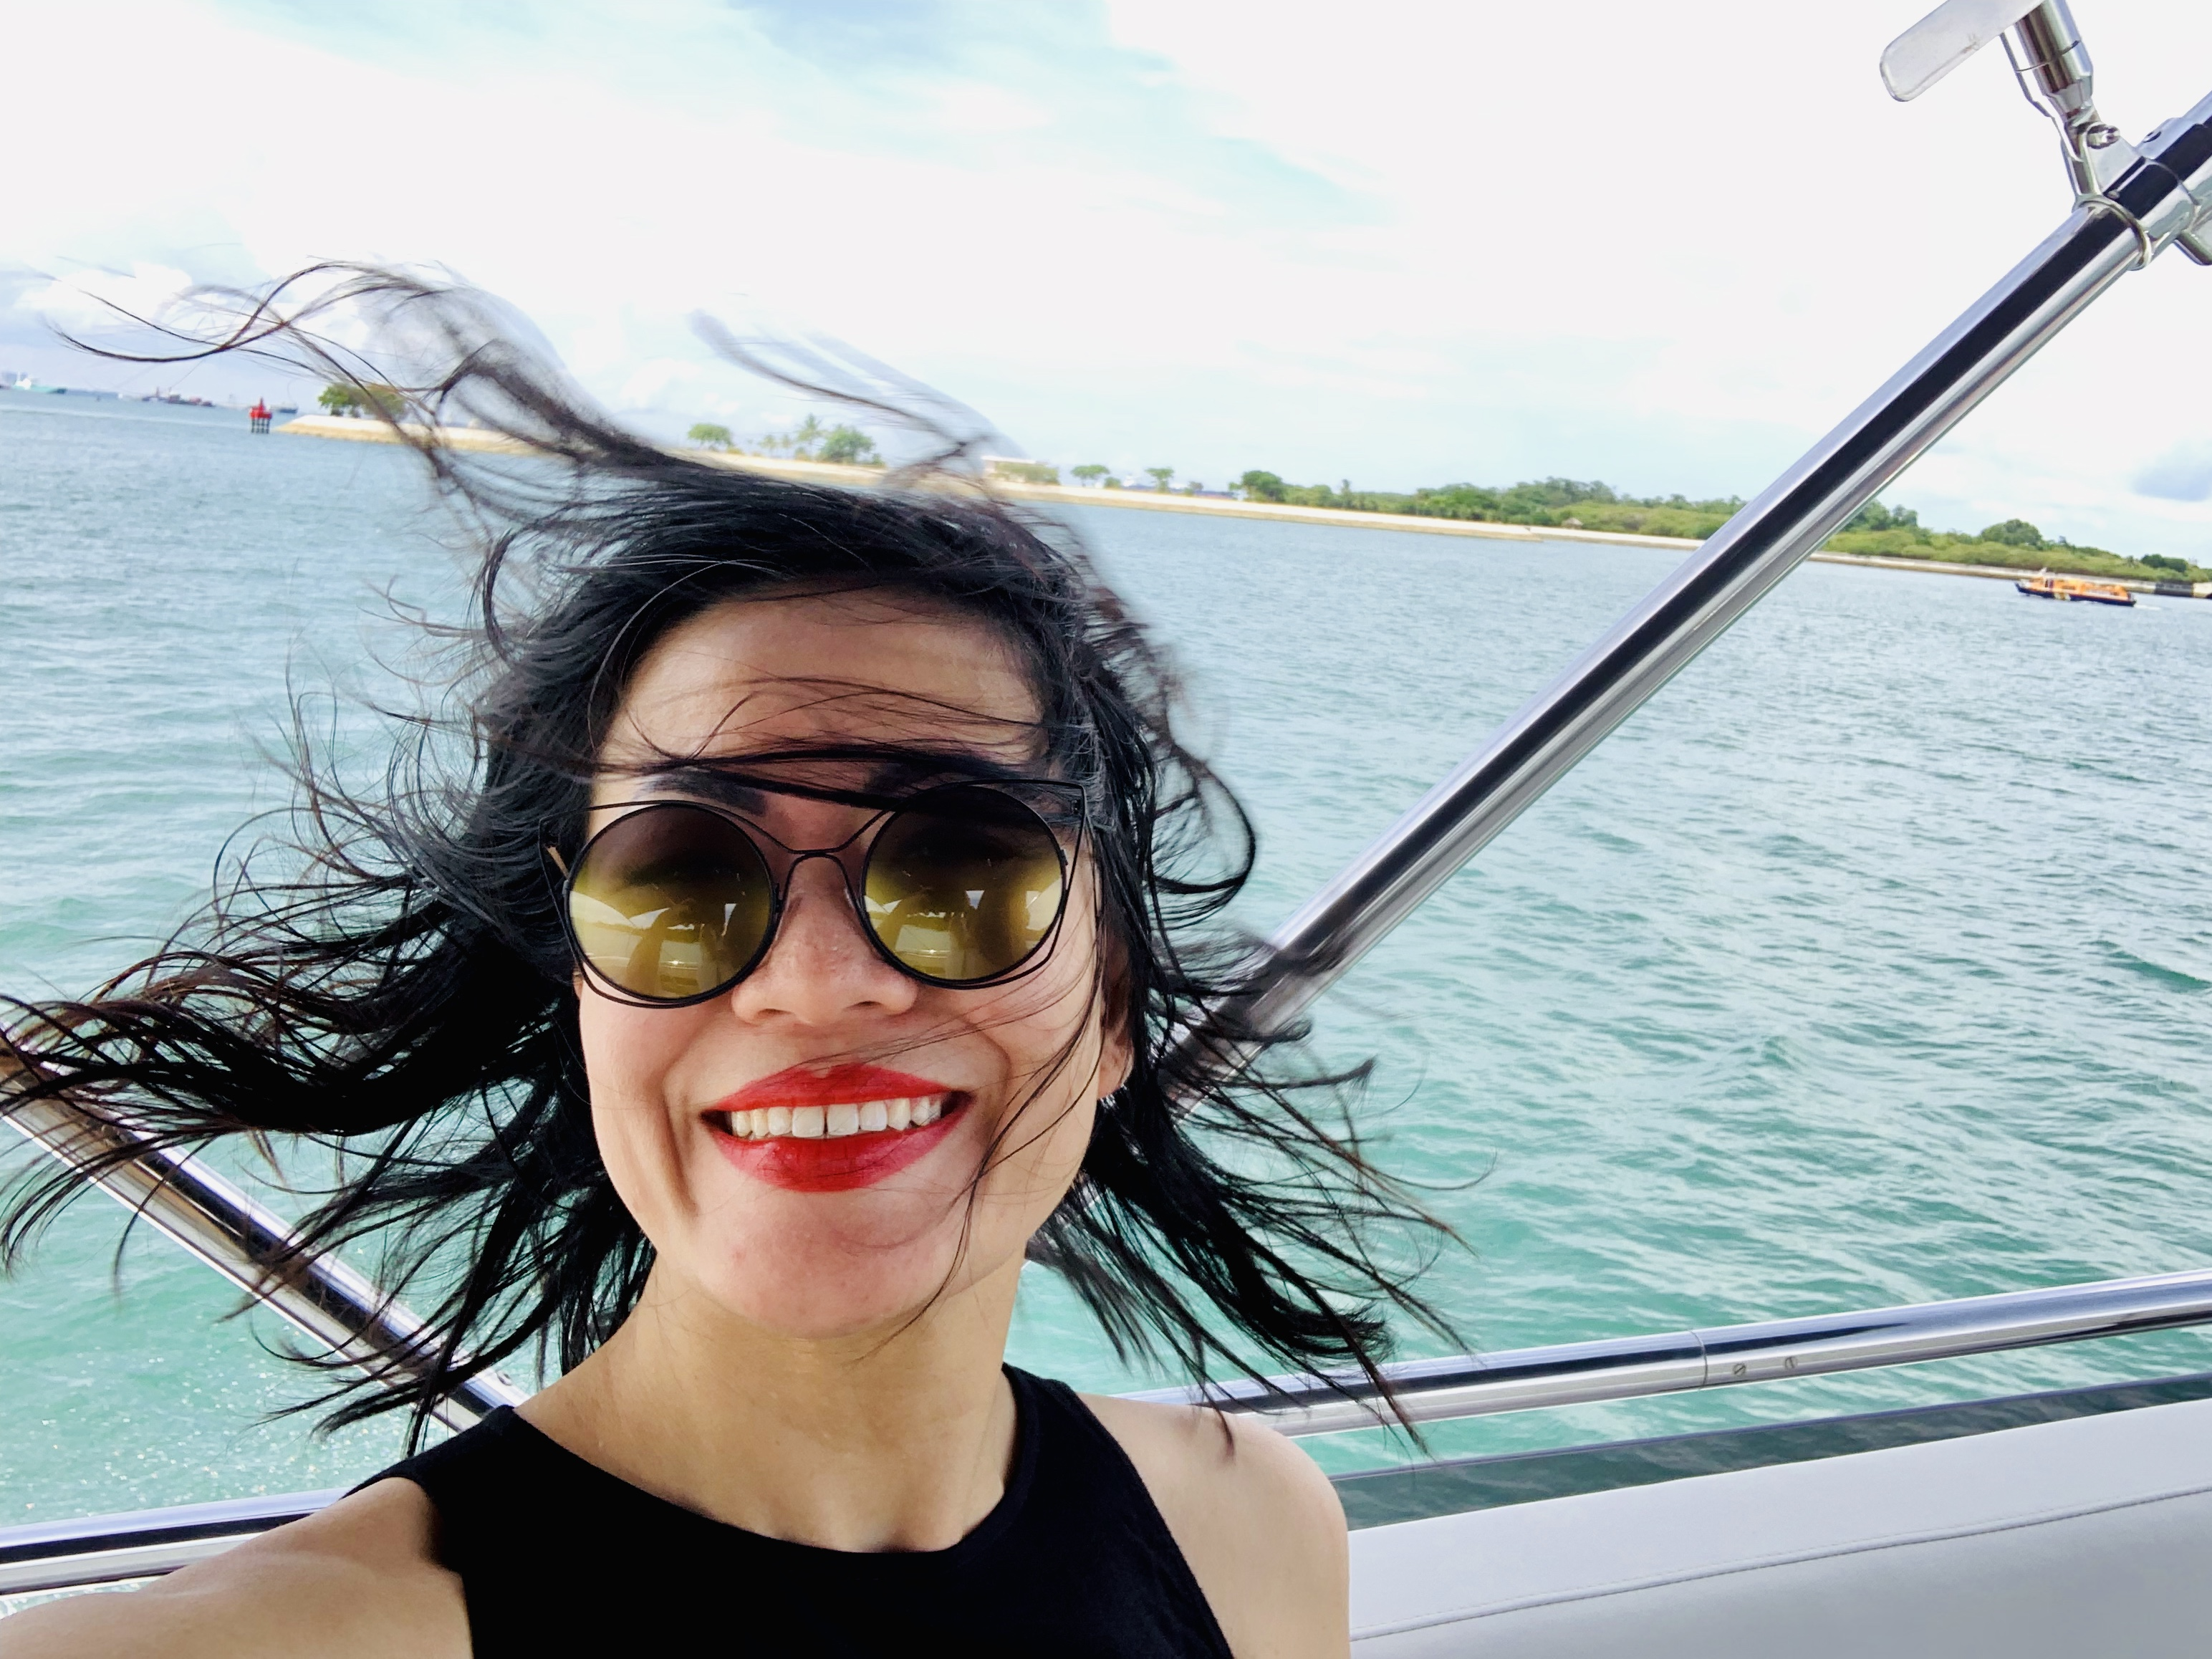 Wind in my hair on the Princess Yacht